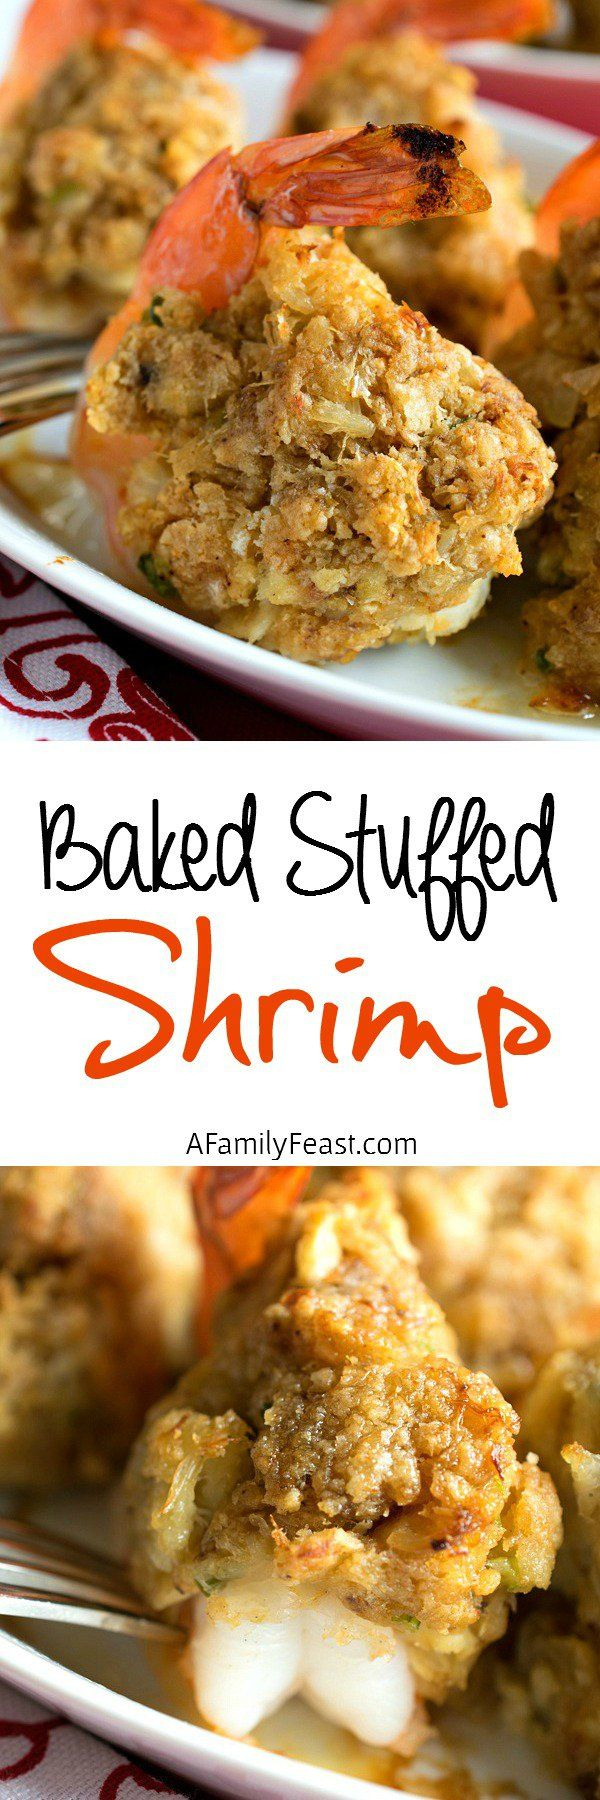 29 best Recipes that make me miss Charleston images on Pinterest ...